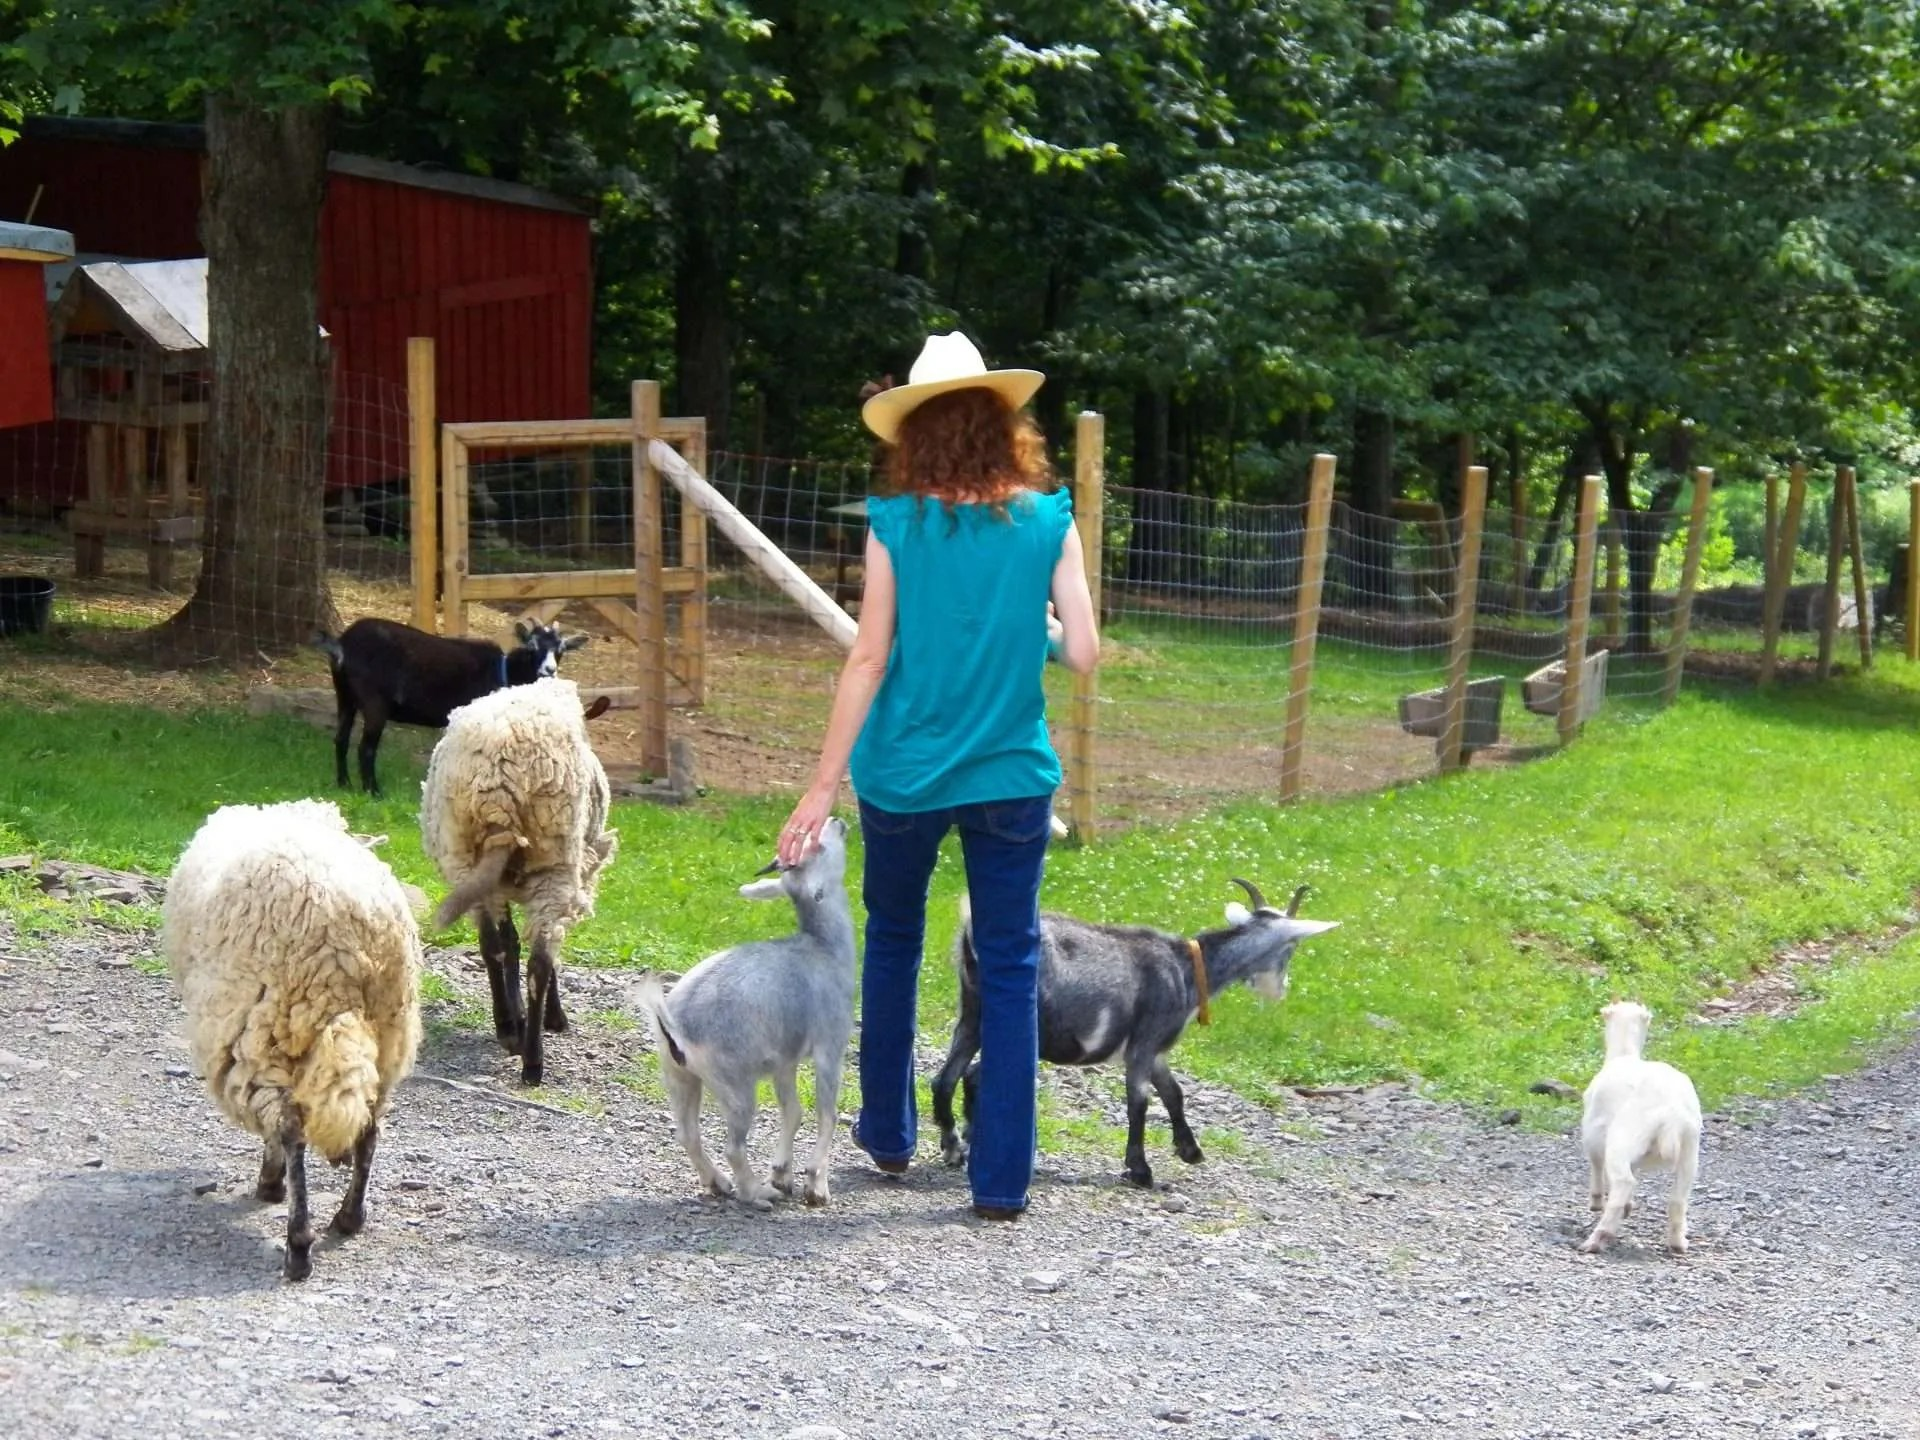 Elle with the goats and sheep